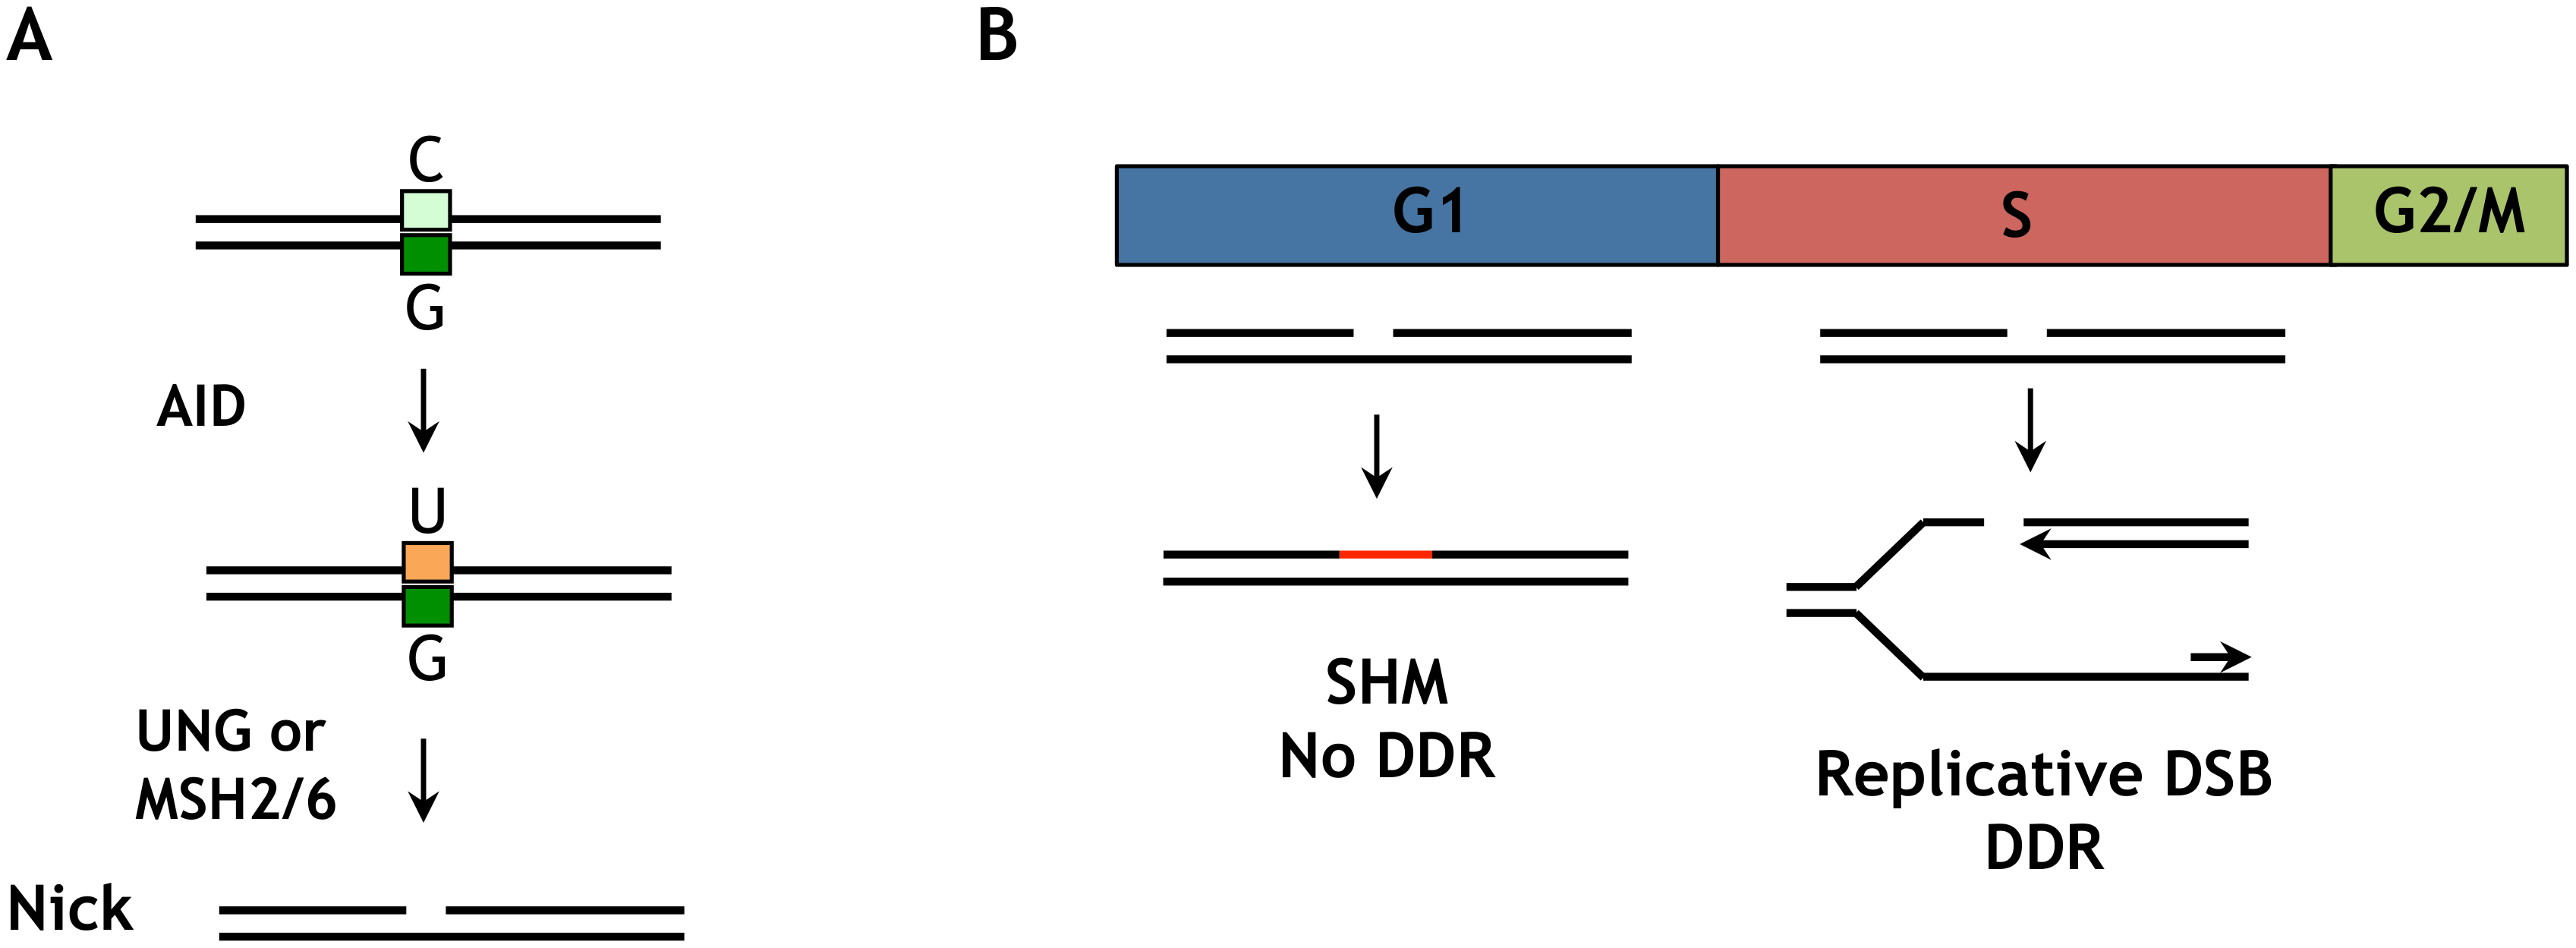 Distinct outcomes of an AID-initiated DNA nick in G1 and S/G2M phases.